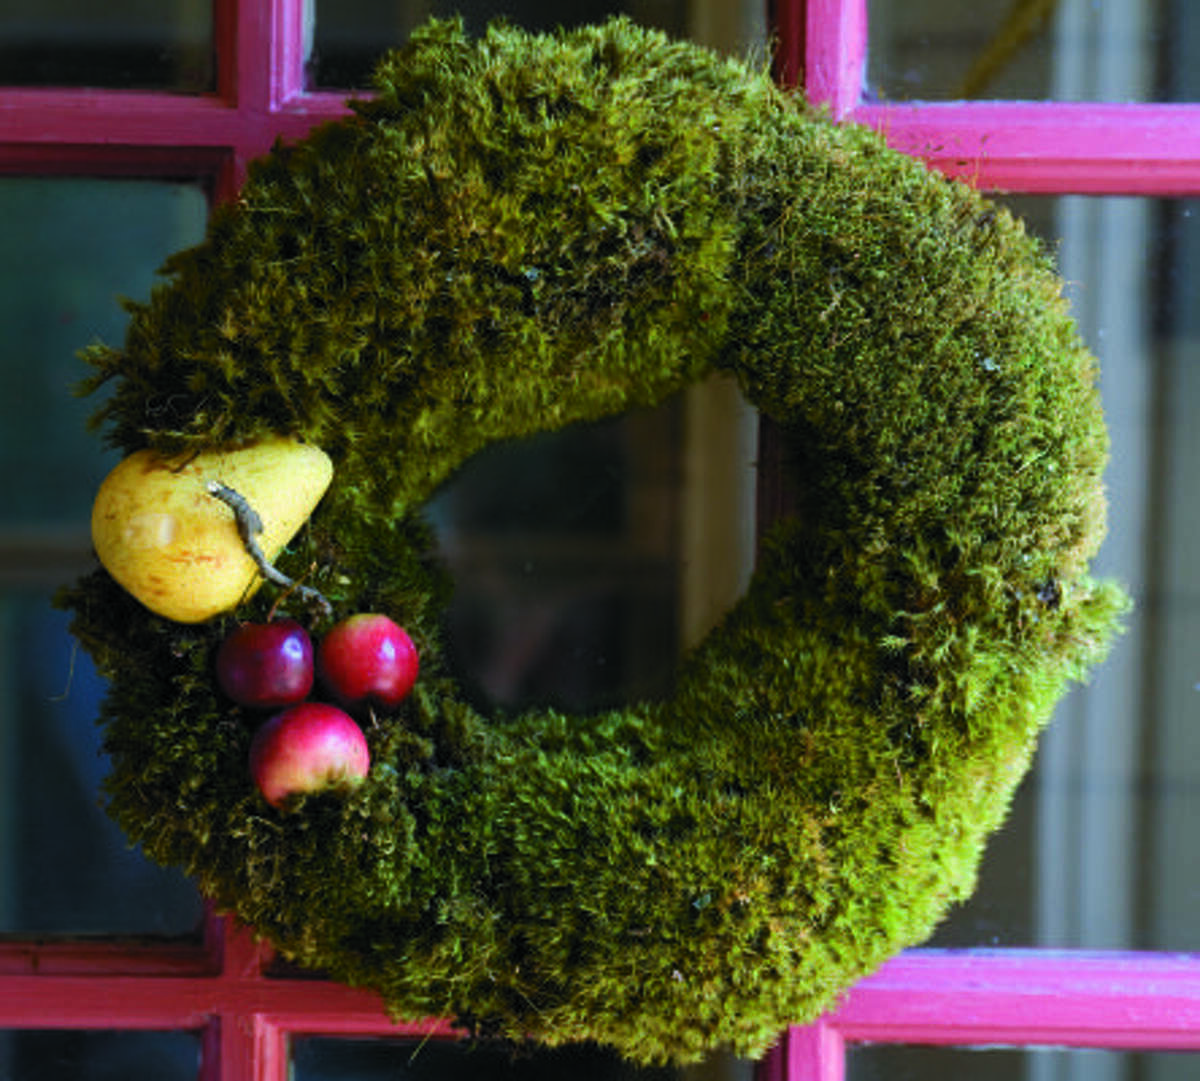 BUY: Moss wreaths are living and can be reused year after year.